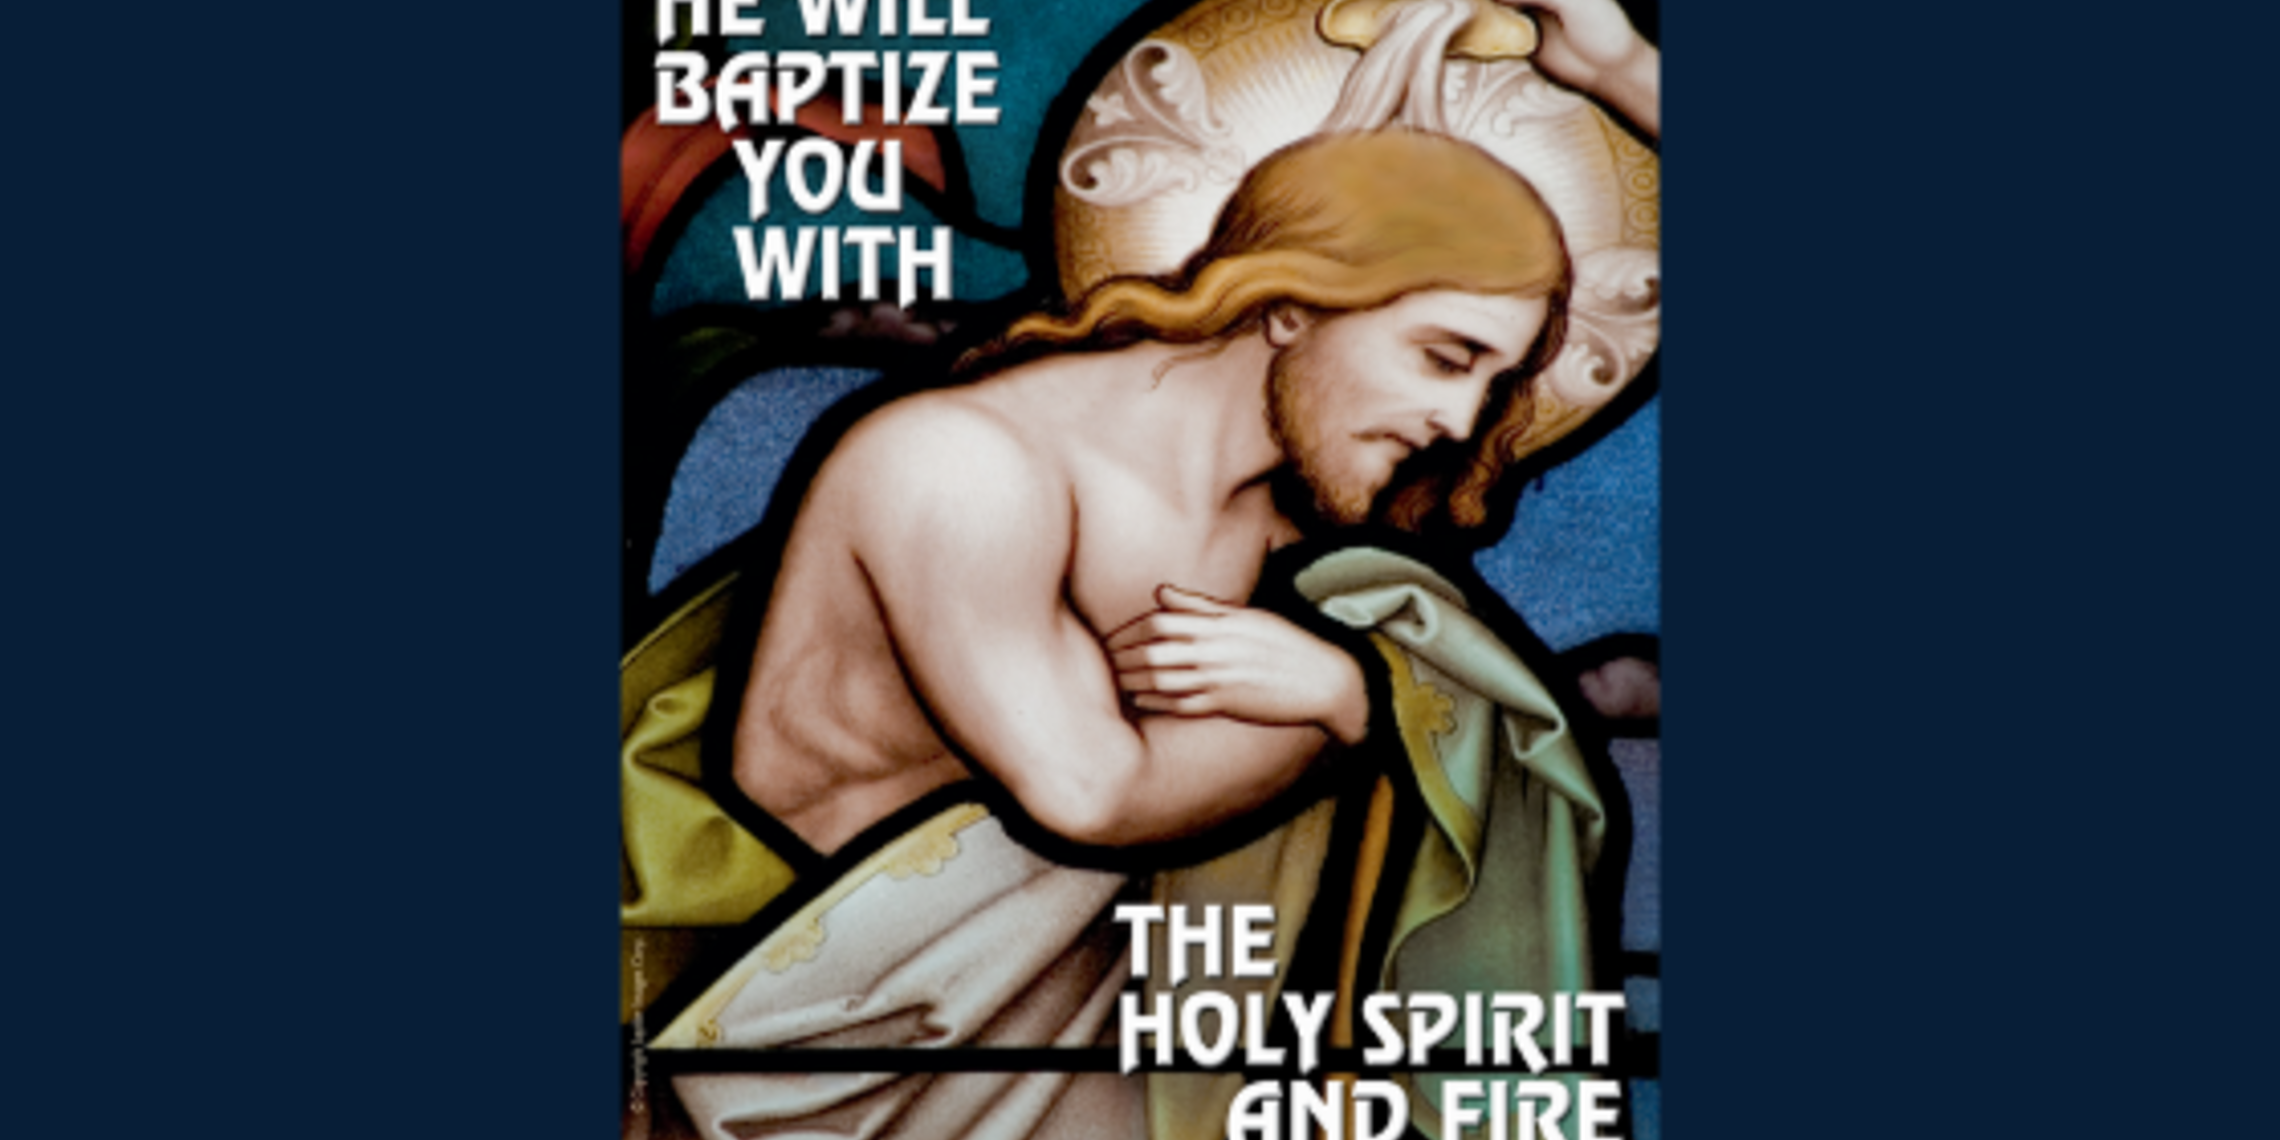 He Will Baptize